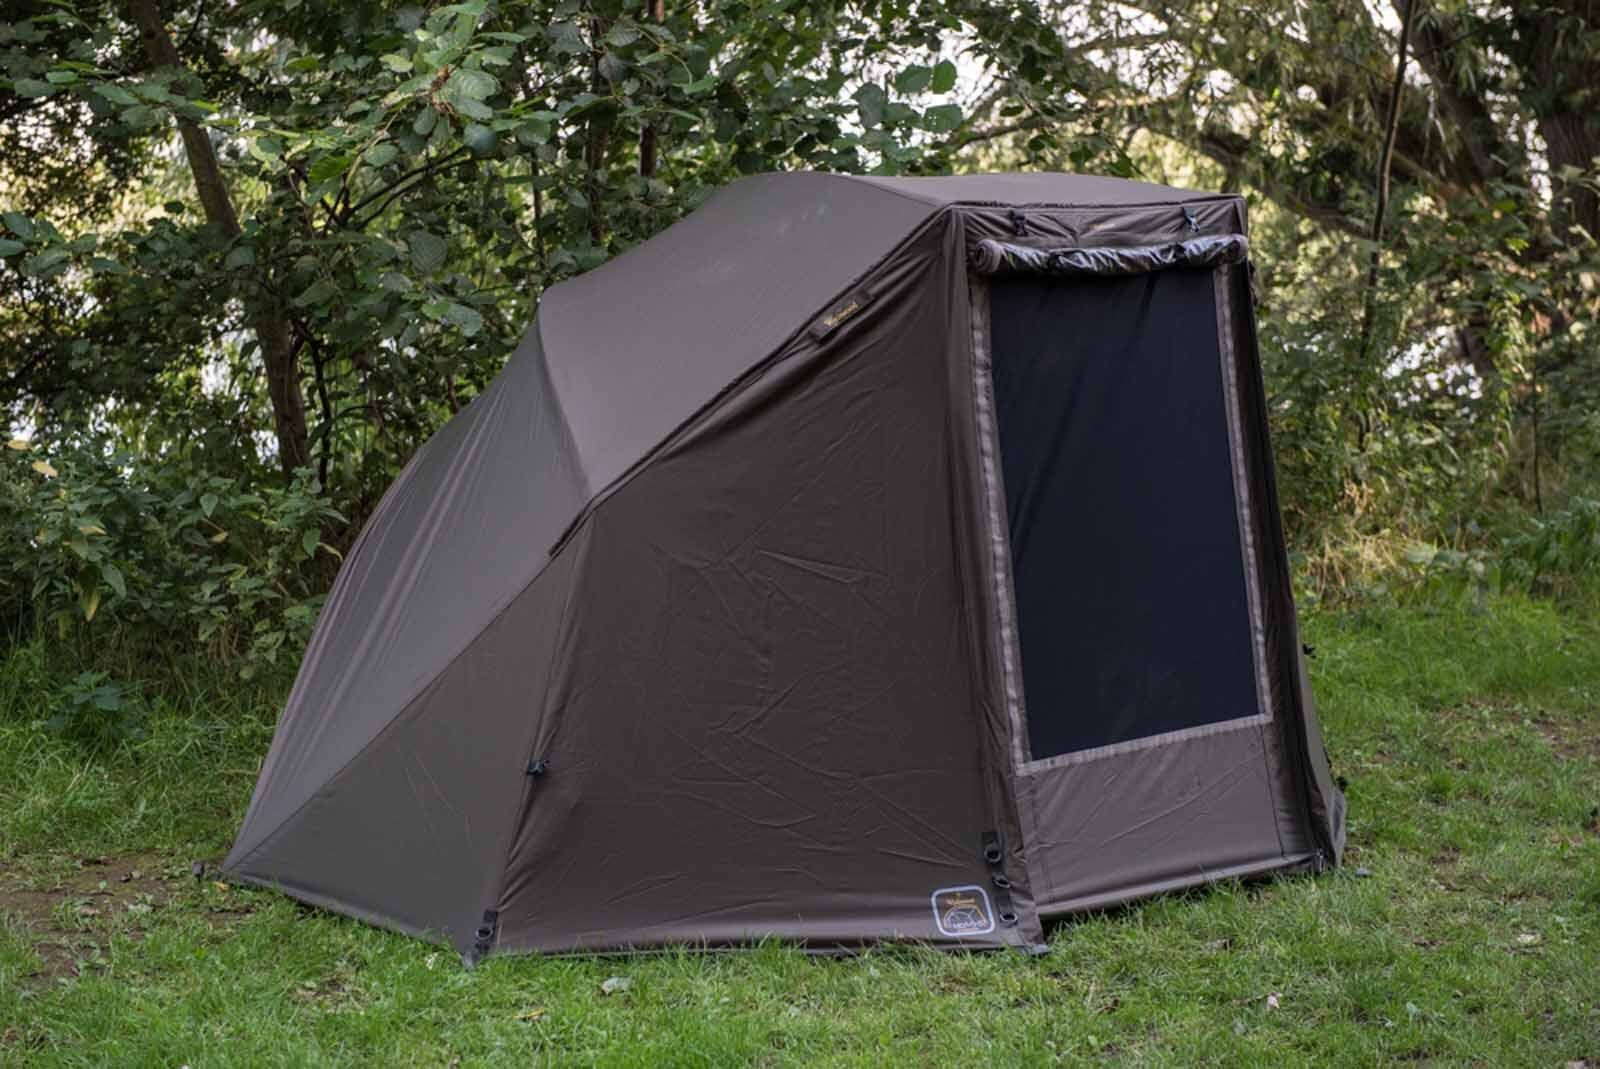 Wychwood Fishing -Aluminium MHR Brolly Overwrap -Aluminium Fishing Pegging Points, Letter Box Front 3e7afe